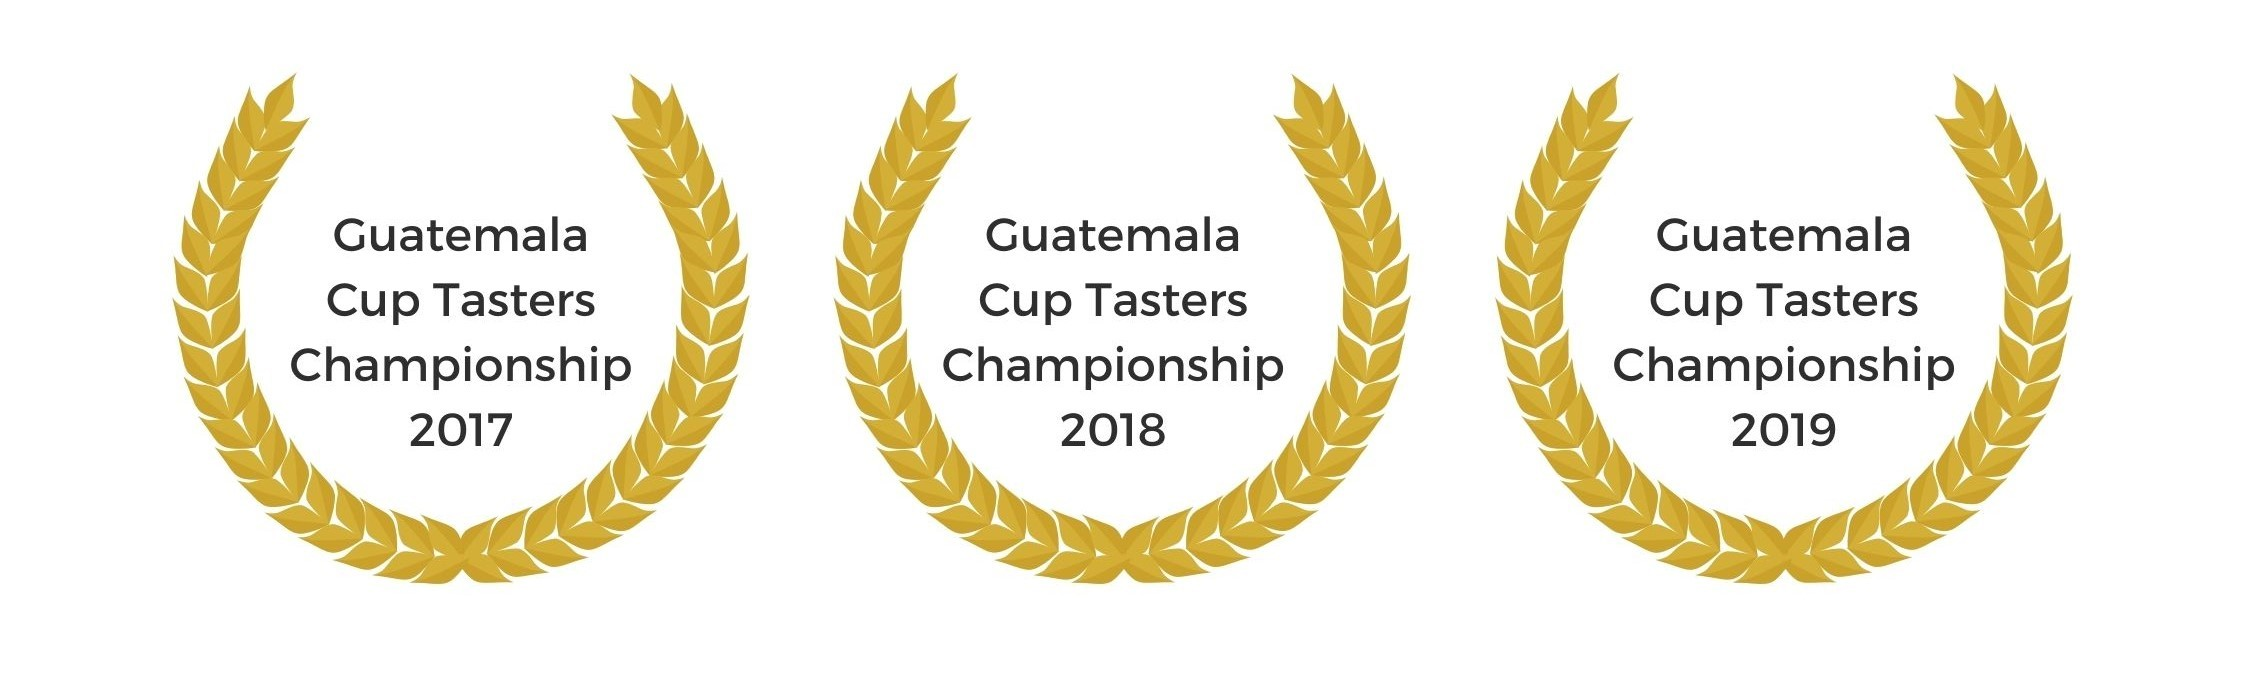 Dulce Barrera - Cup Tasters Championships